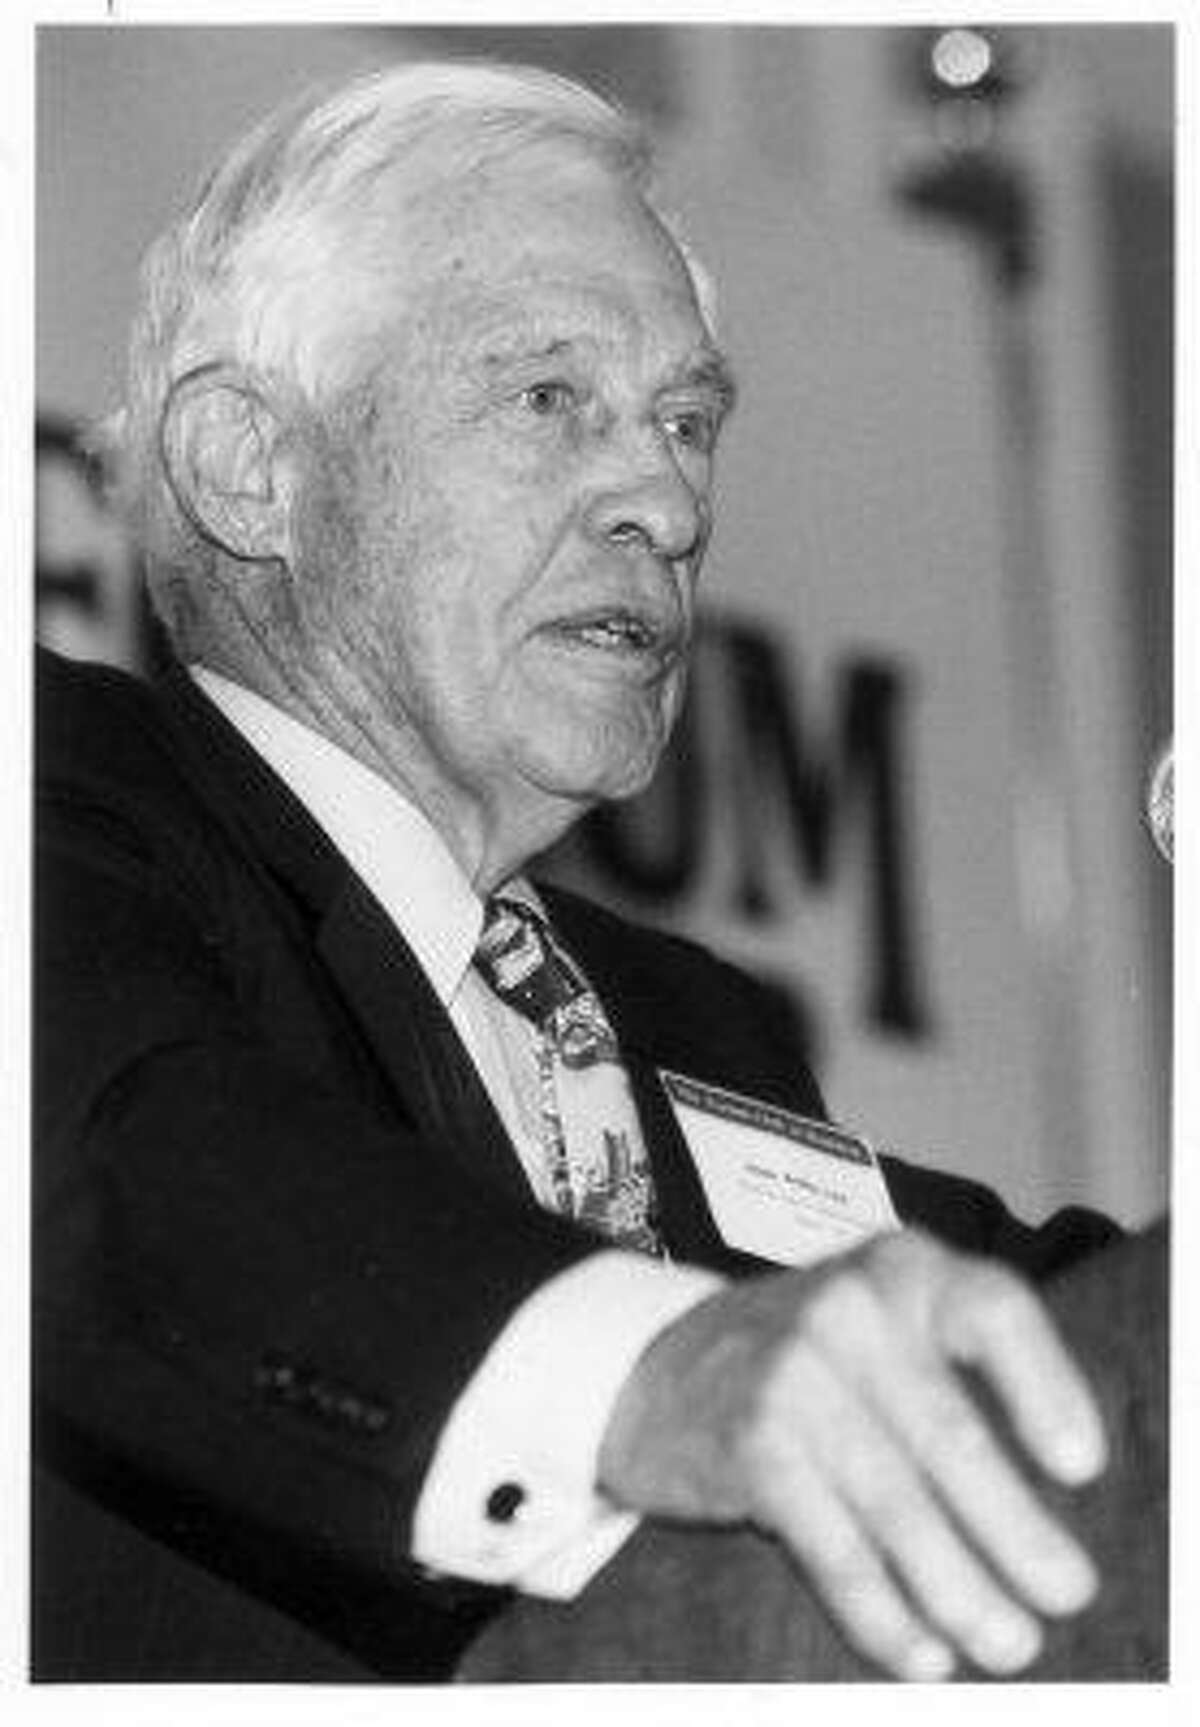 John McMullen, former Astros owner New Jersey native who stuck out like a sore thumb. Made questionable decisions such as firing GM Tal Smith after the 1980 NL West championship season. His worst offense? Low-balling Nolan Ryan and letting him walk to the Rangers as a free agent.